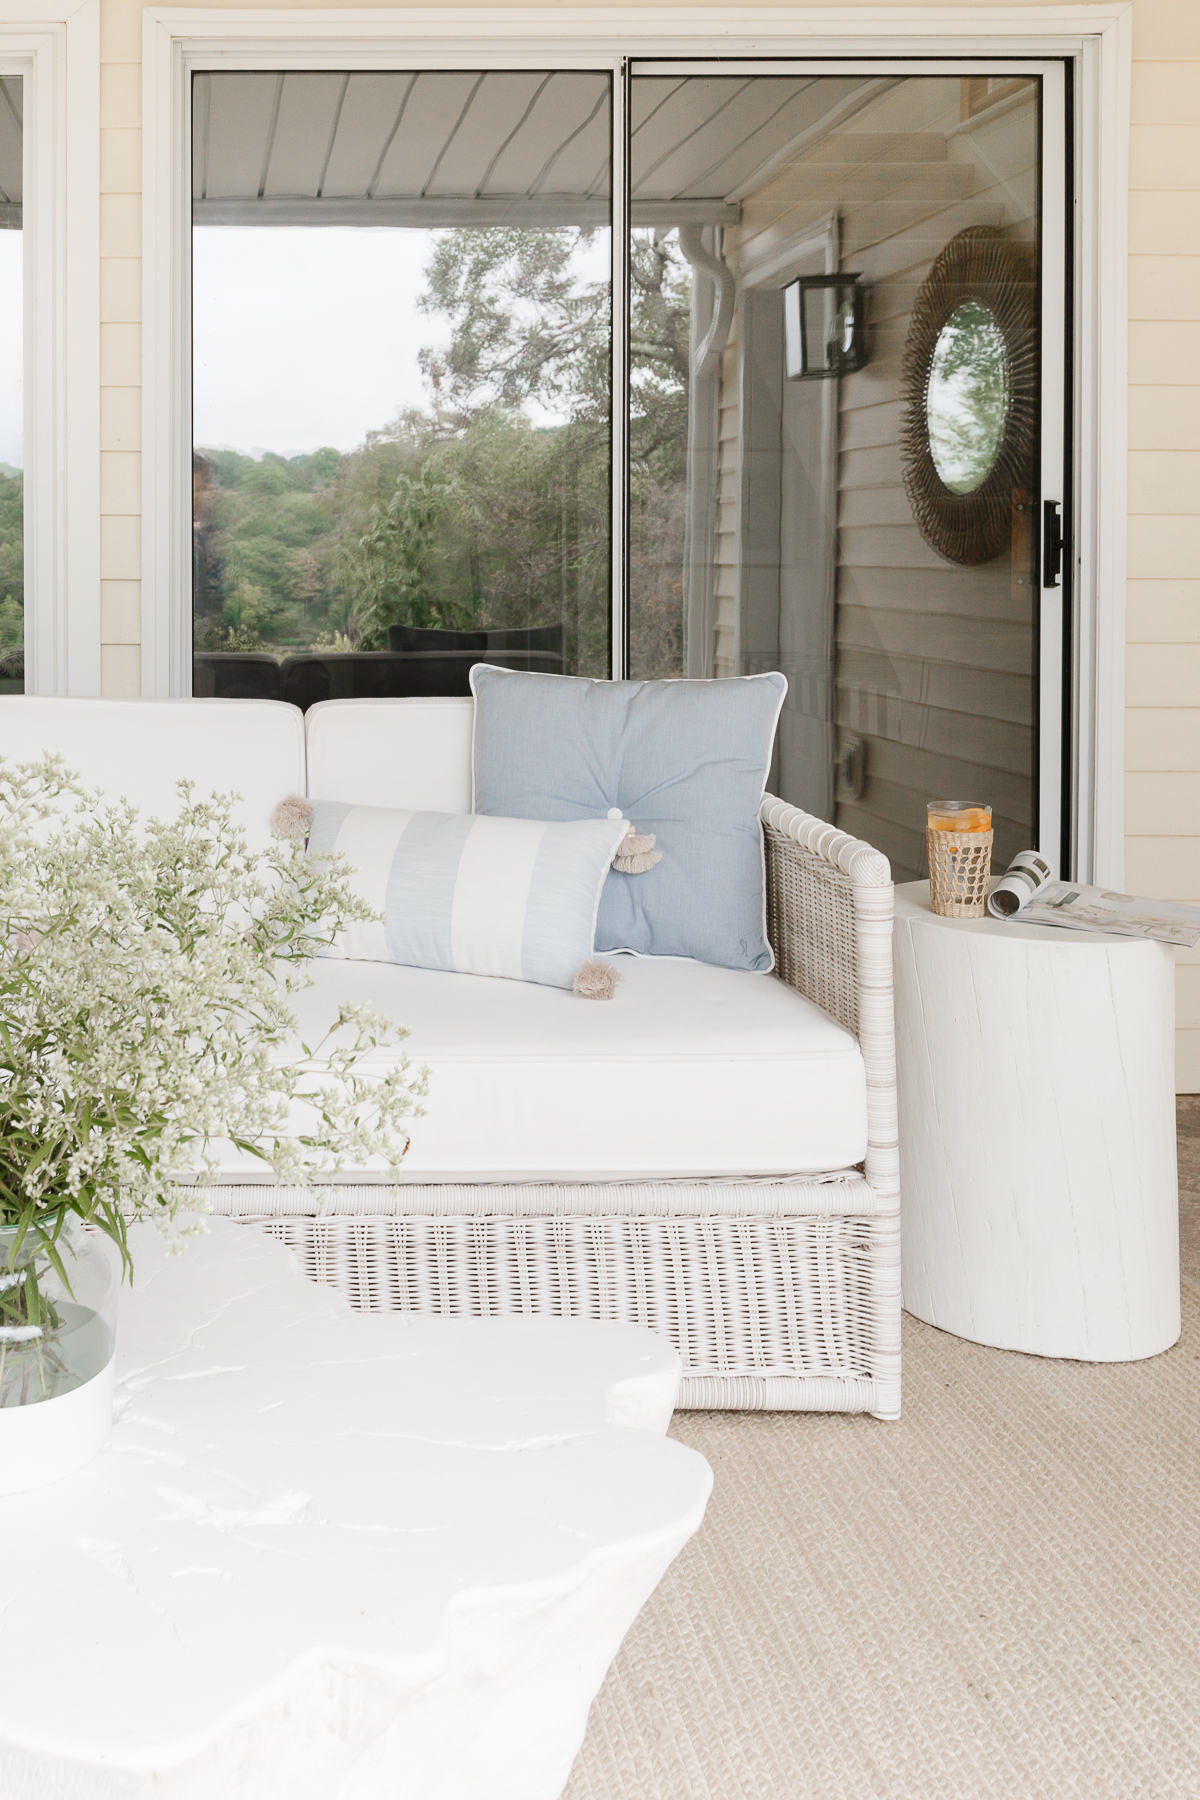 wicker sofa on covered patio with side and coffee tables